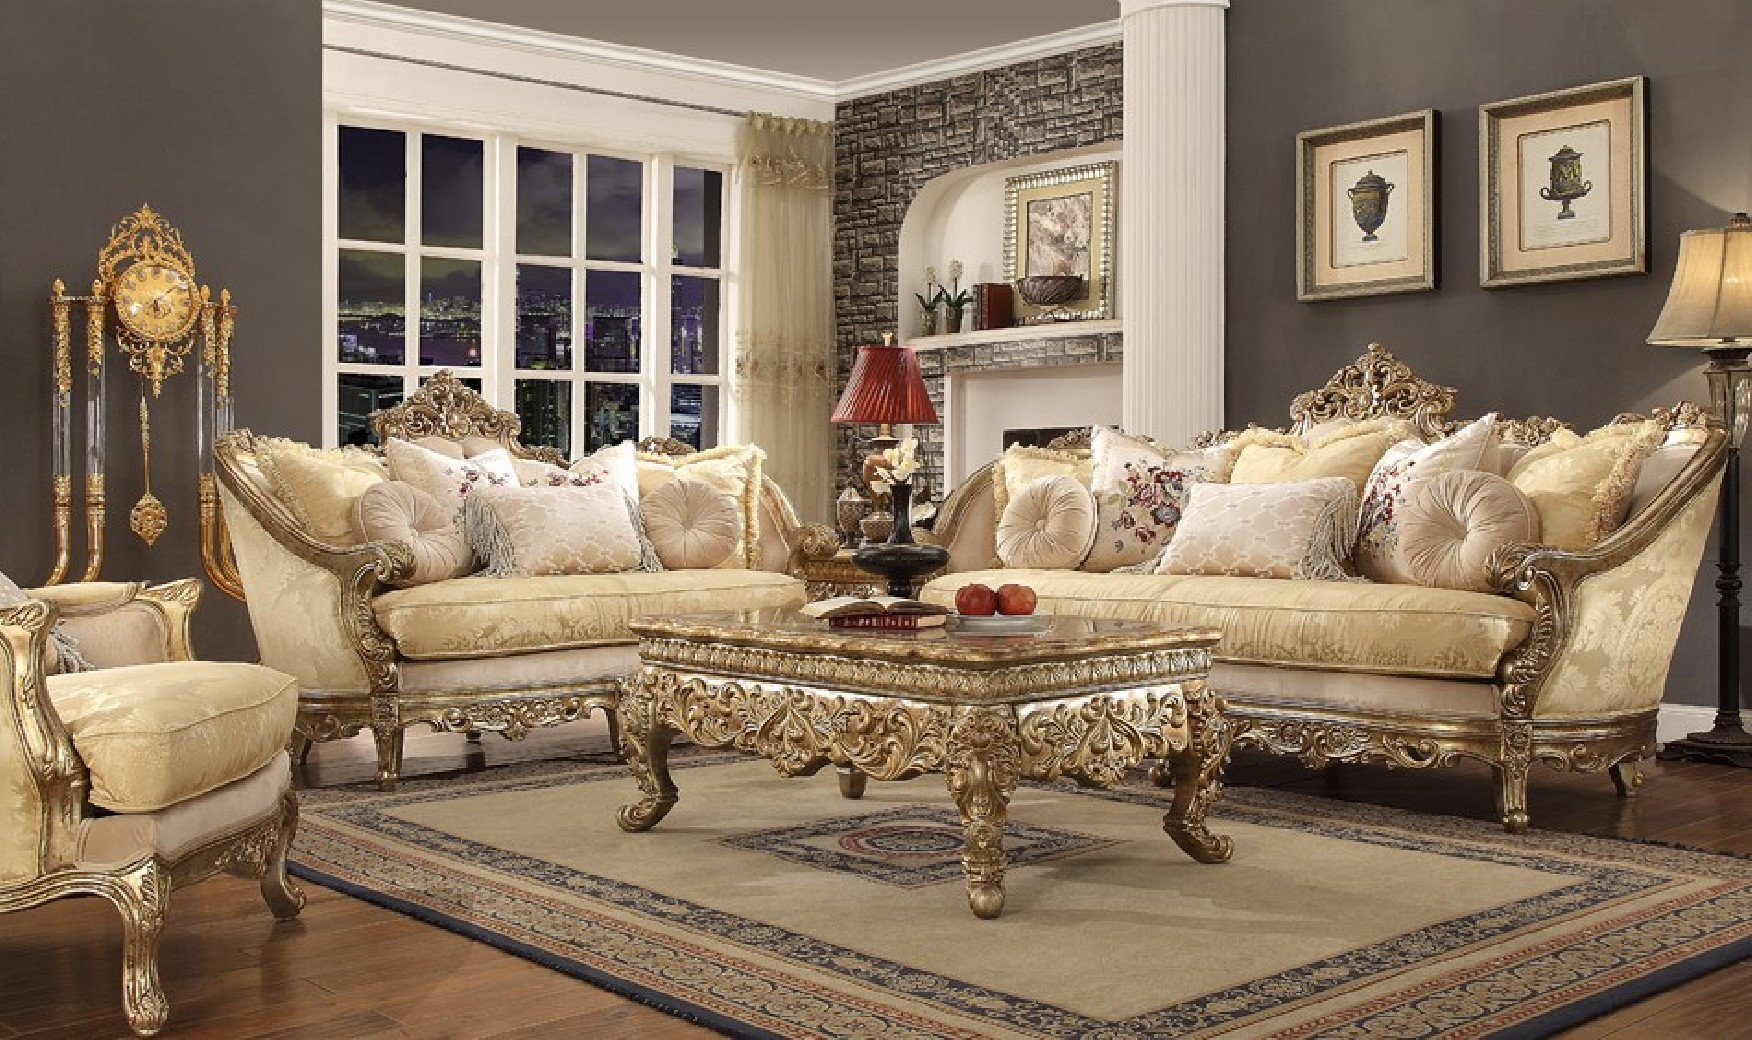 HD 2626 Homey Design Upholstery Living Room Set Victorian